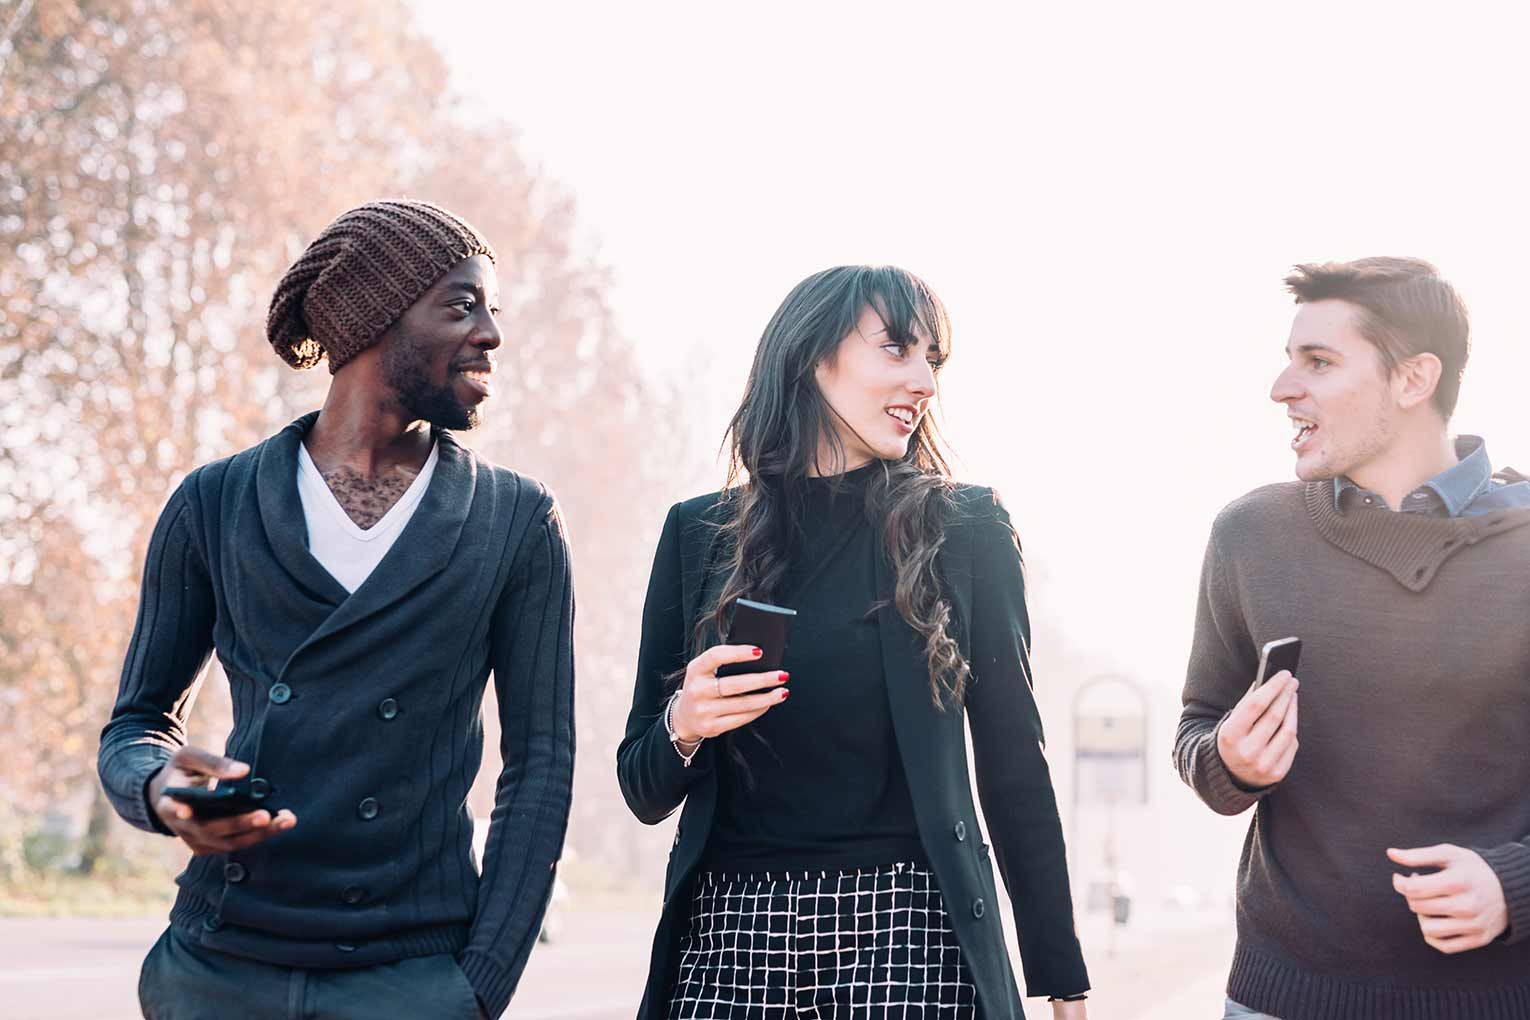 70 is age of financial freedom for Millennials